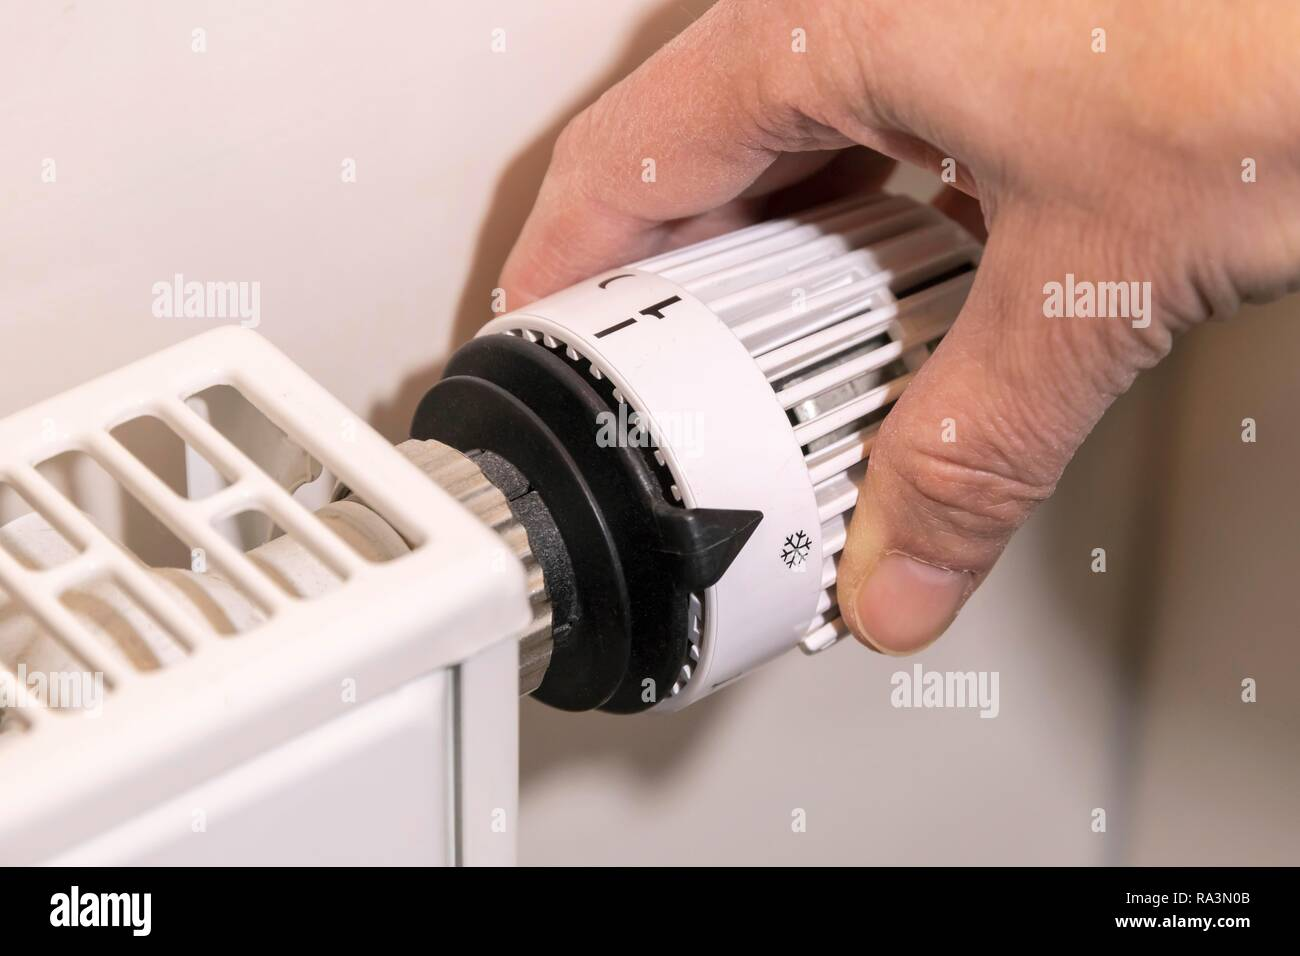 Hand adjusts the temperature at a thermostat of the heating, Bavaria, Germany - Stock Image